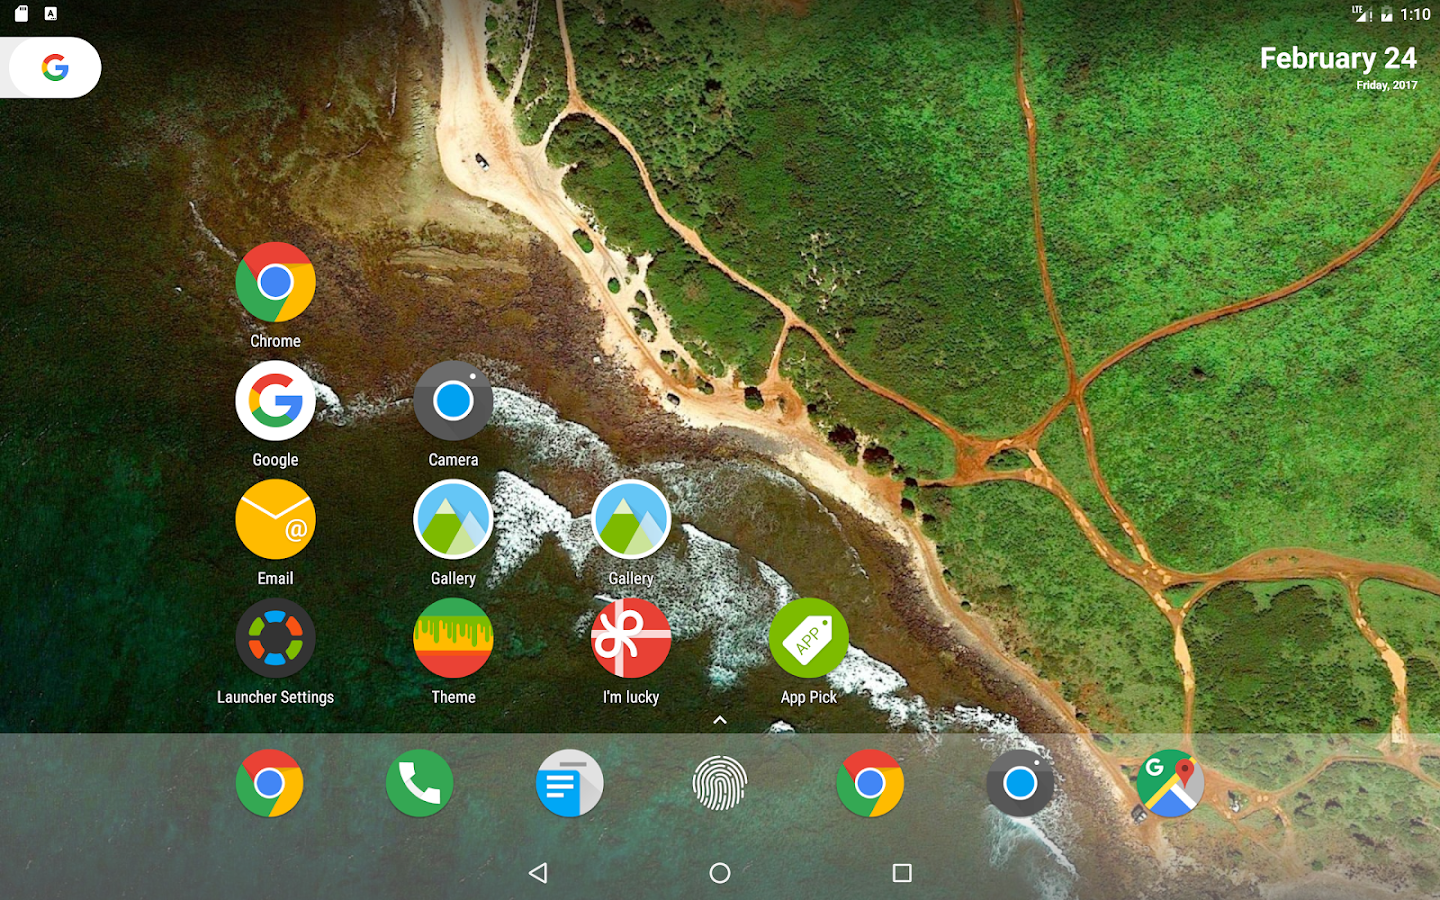 N Launcher Pro - Nougat 7.0 Screenshot 9